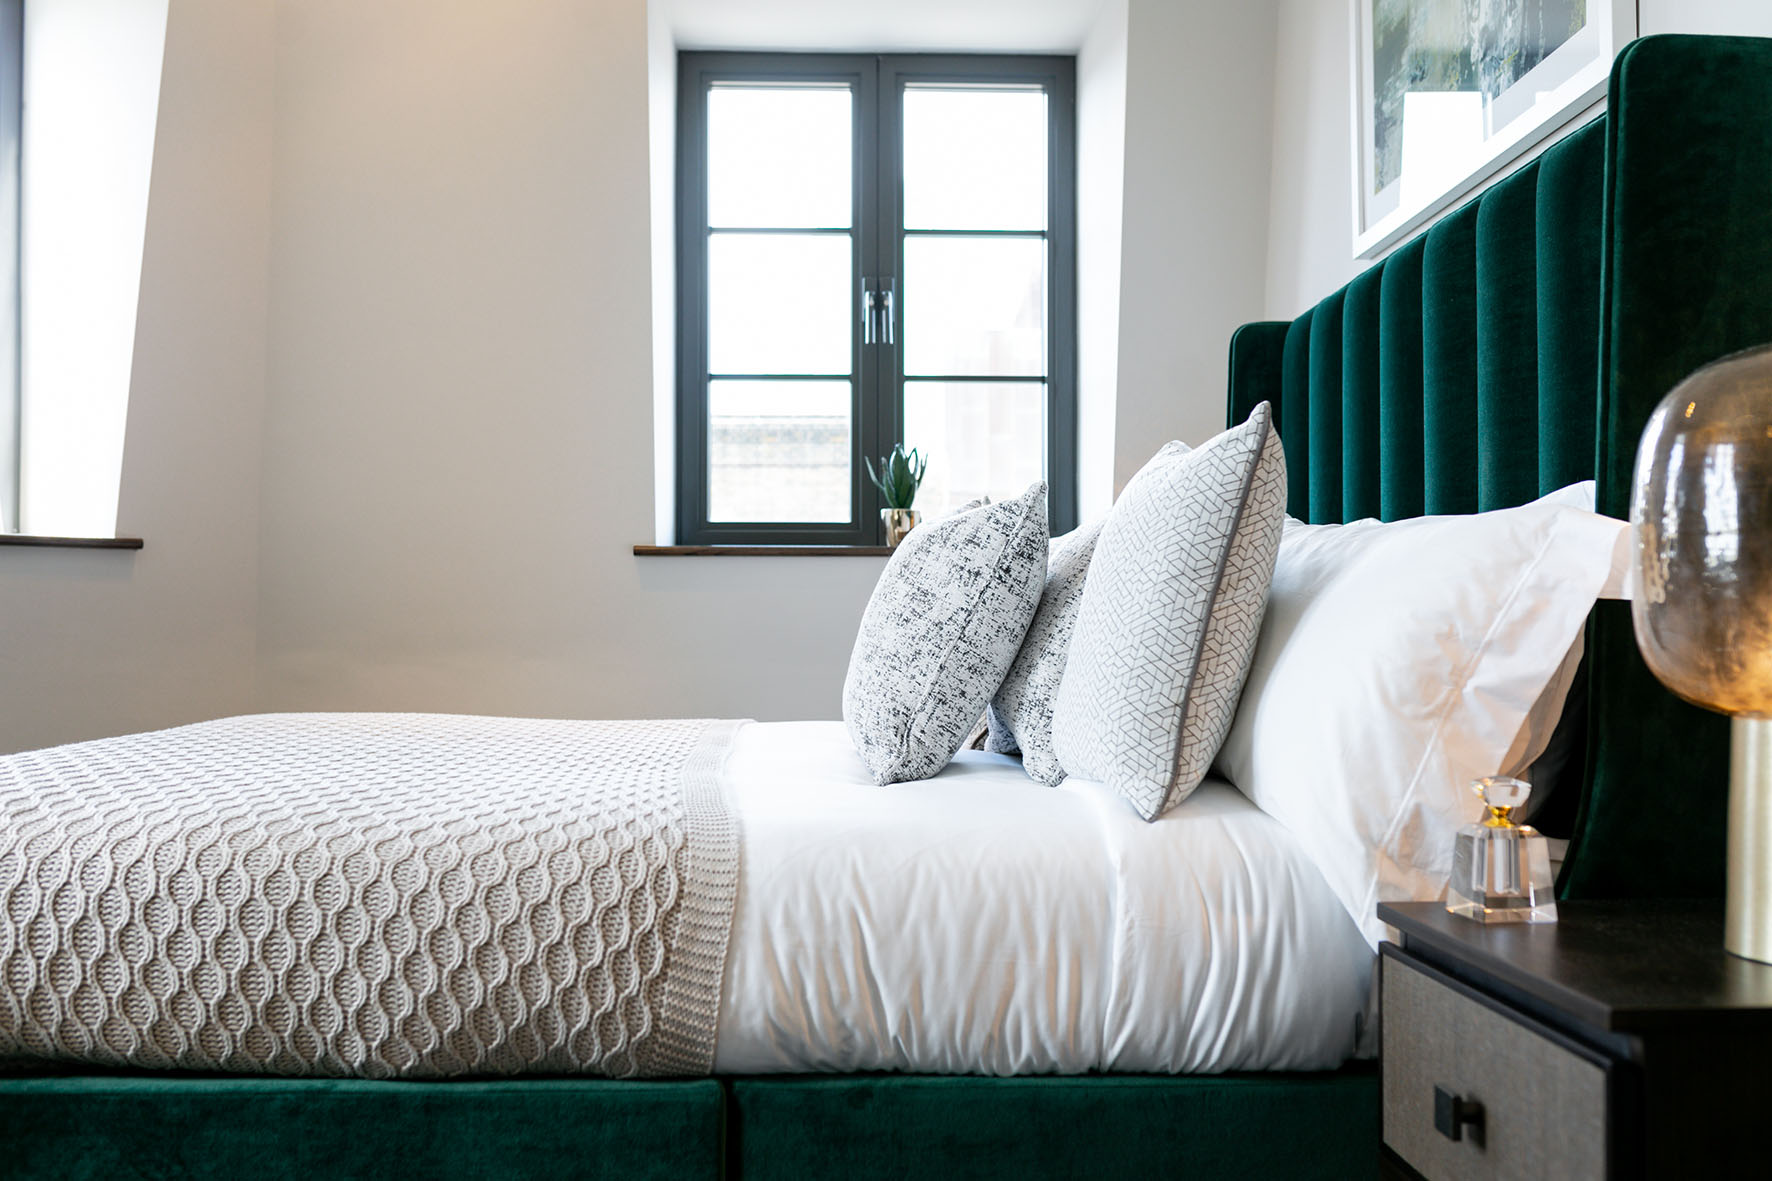 Lovelydays luxury service apartment rental - London - Soho - Great Marlborough St. IX - Lovelysuite - 2 bedrooms - 2 bathrooms - Queen bed - 4947d8cfeacd - Lovelydays